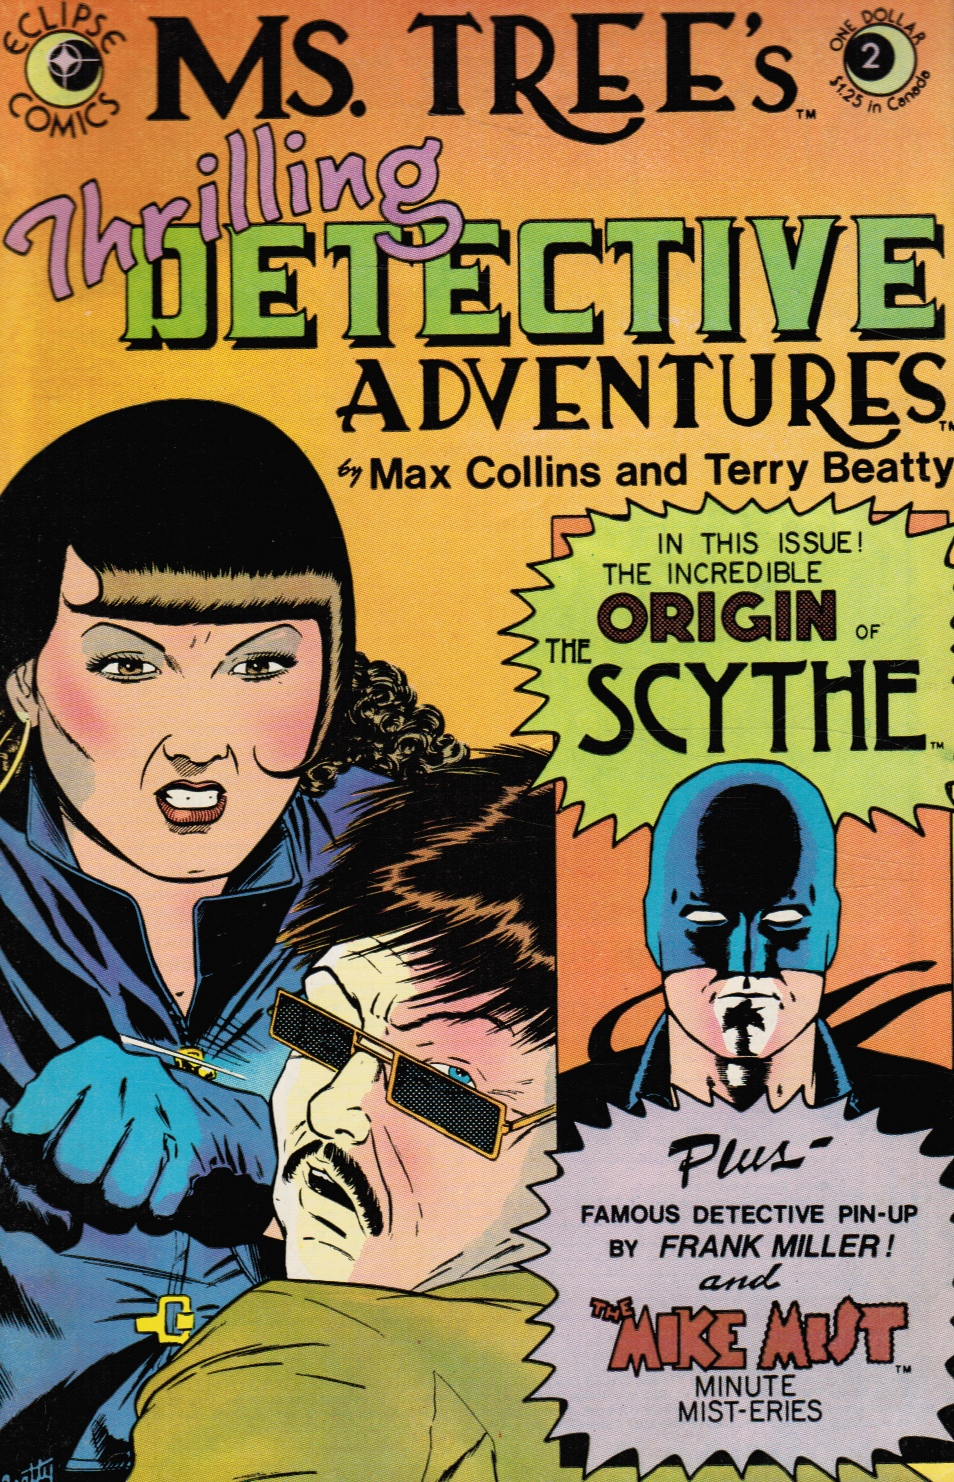 Image for Ms. Tree's Thrilling Detective Adventures #2 April 1983